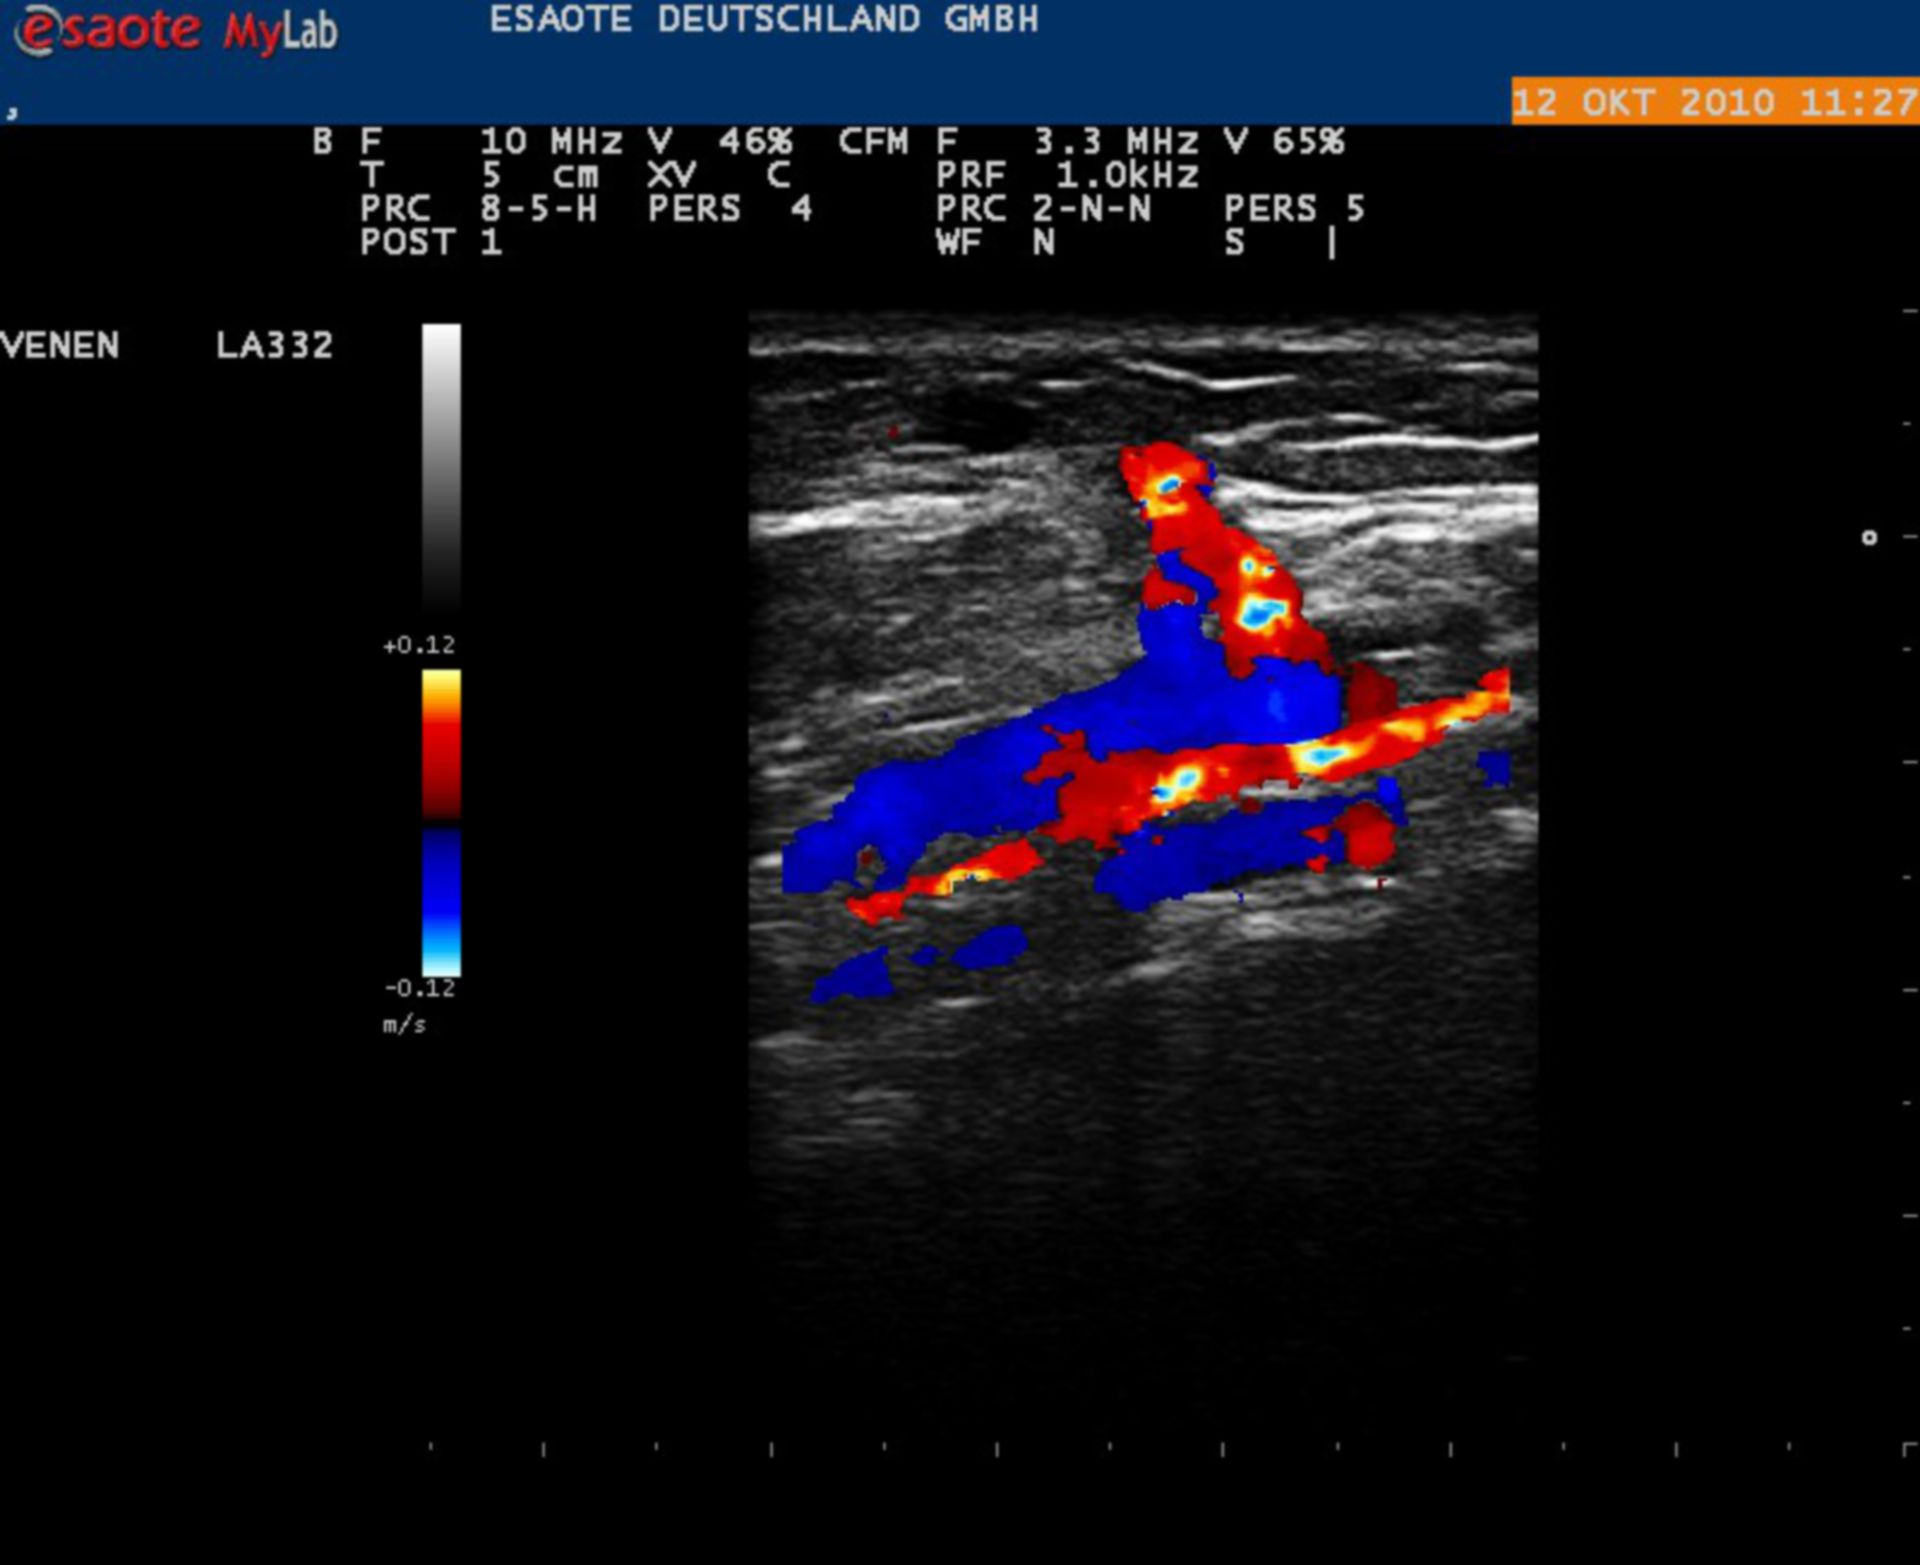 Duplex Sonographie of the Lower Leg: V. tibialis post. and Cockett-Vein